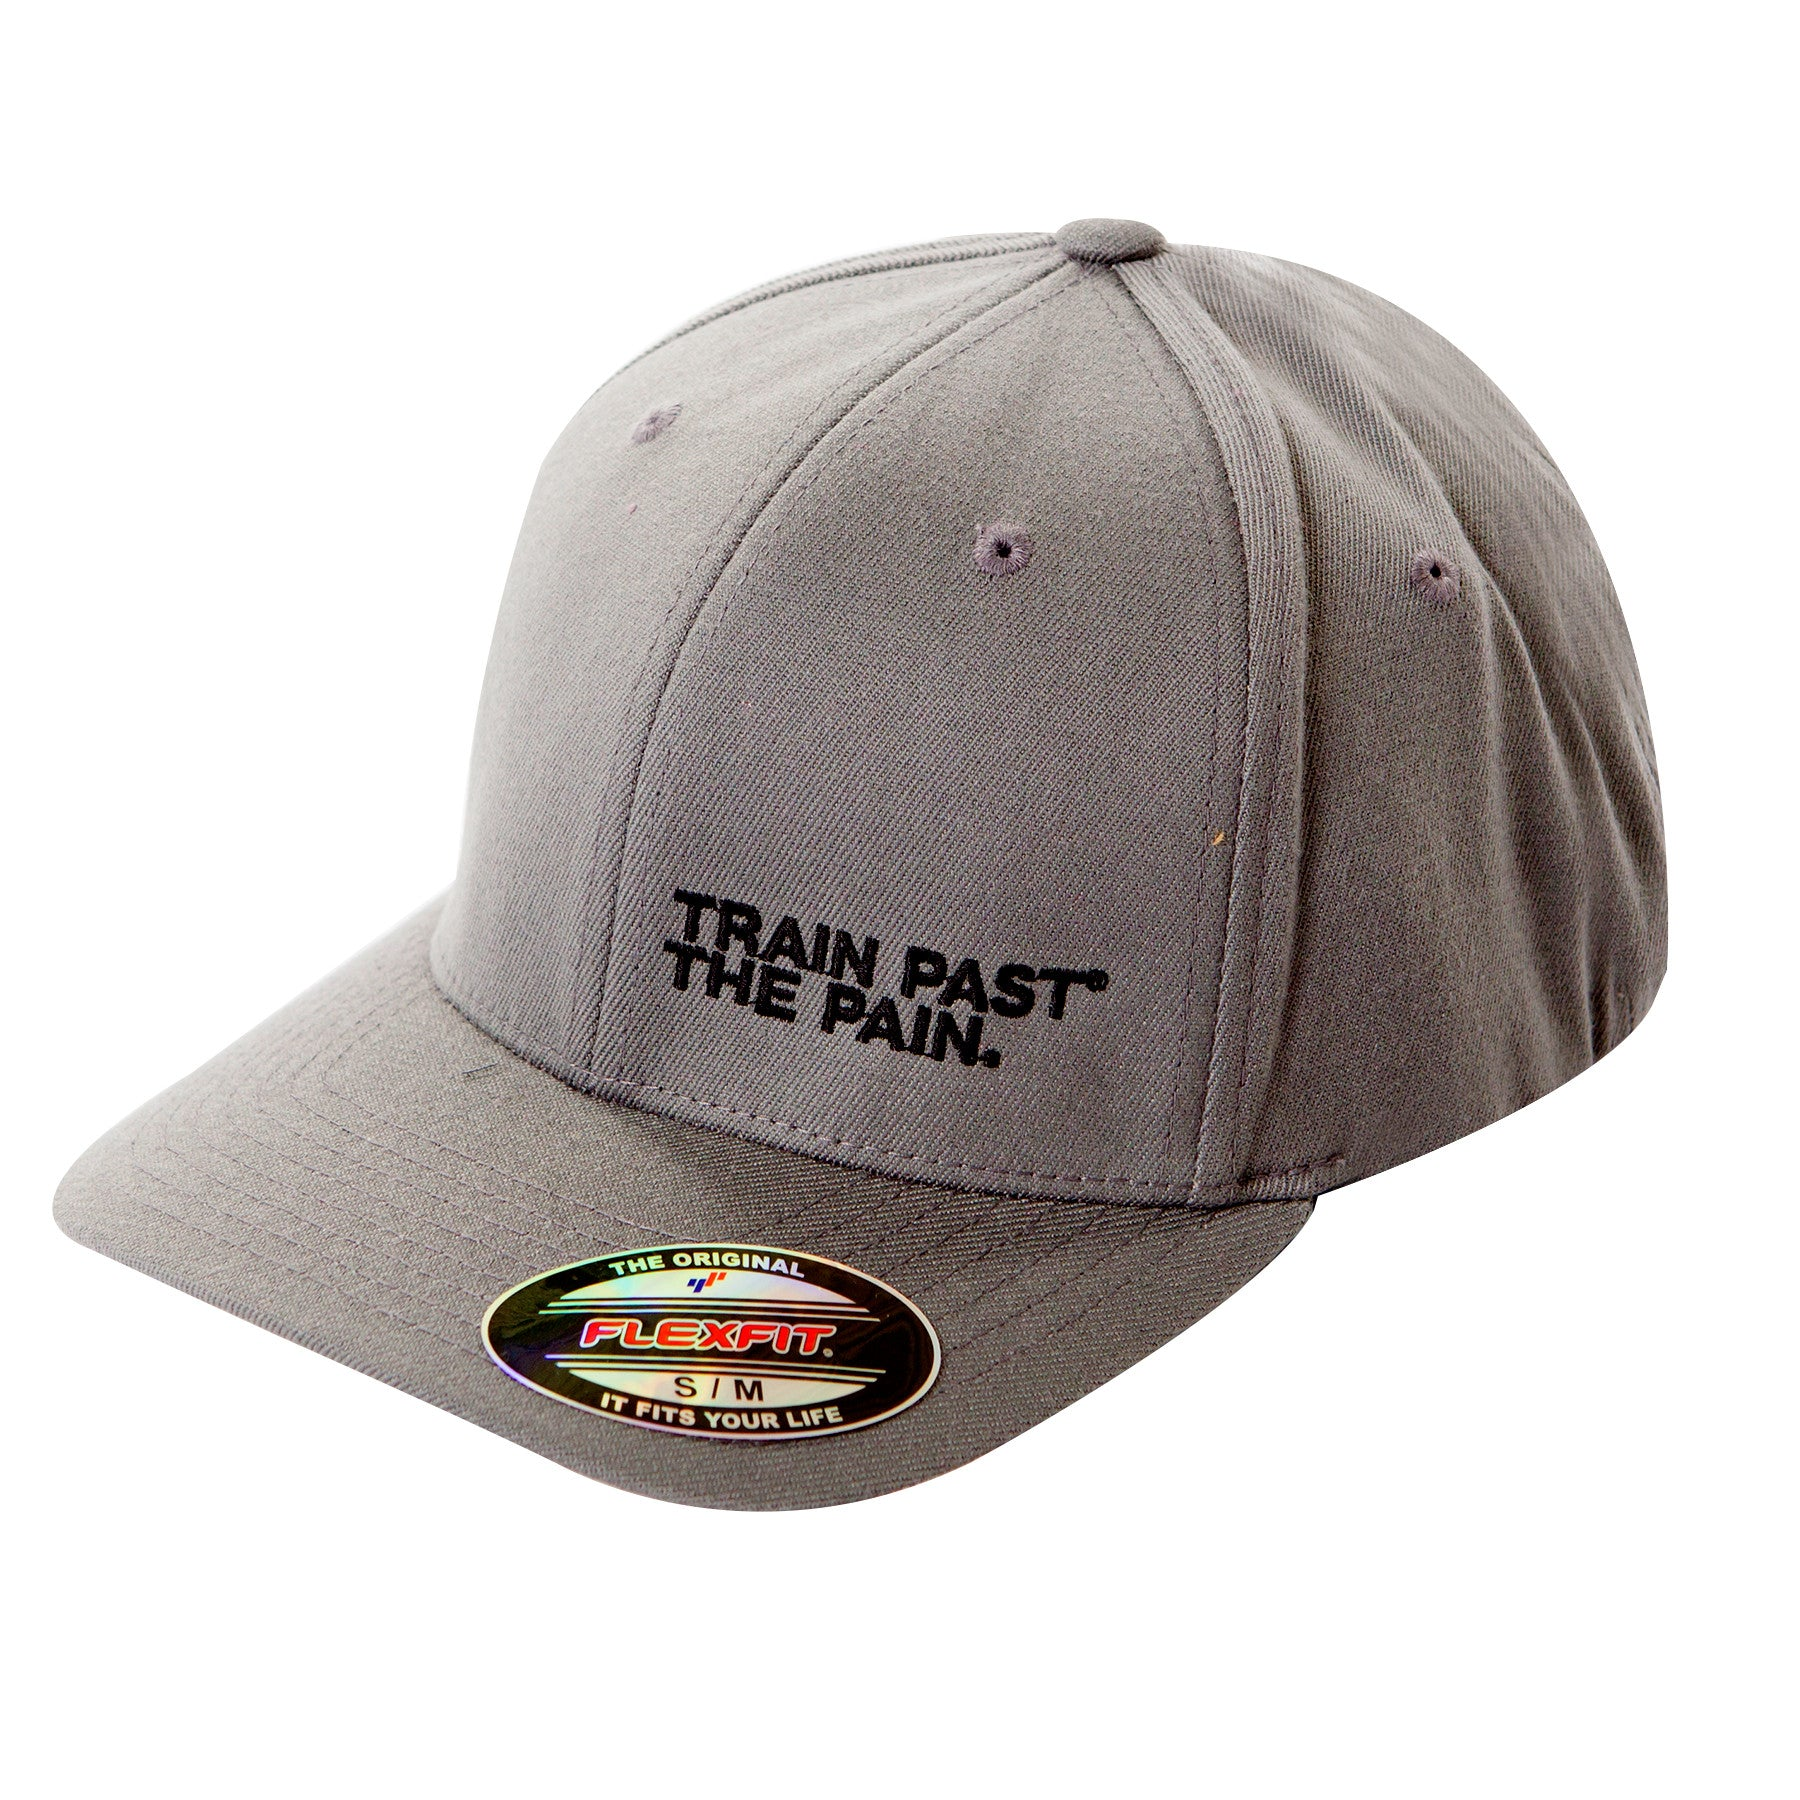 ORIGINAL TRAIN PAST THE PAIN FLEXFIT HAT (Grey)